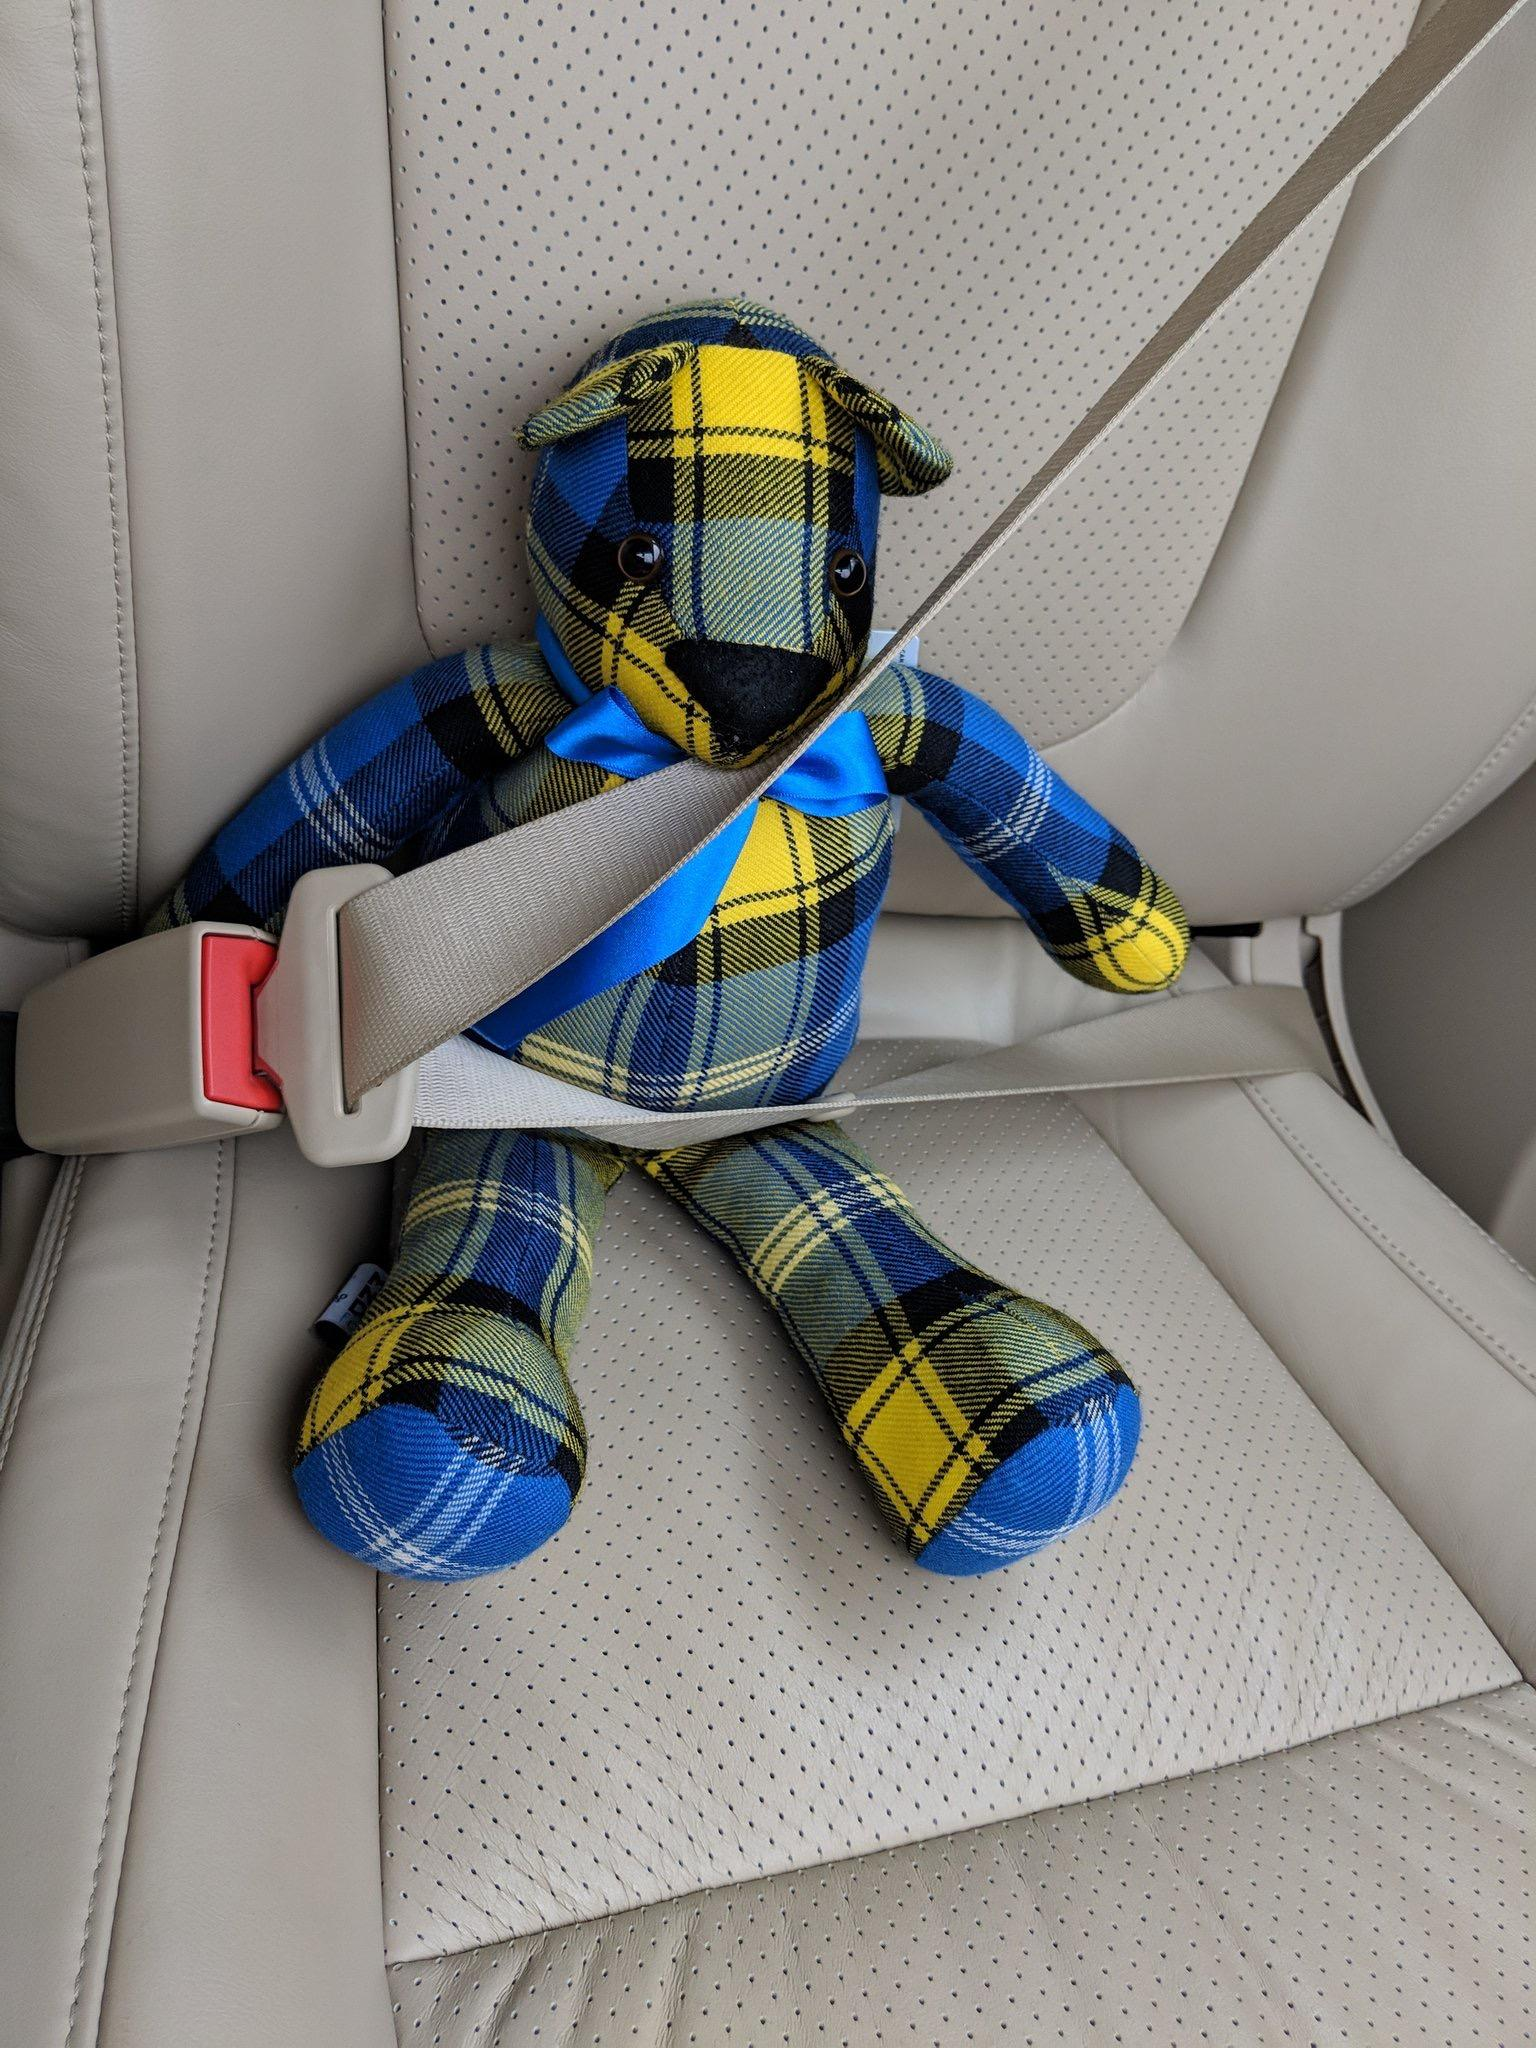 Doddie'5 Tartan Ted travels from Carlisle to Penrith